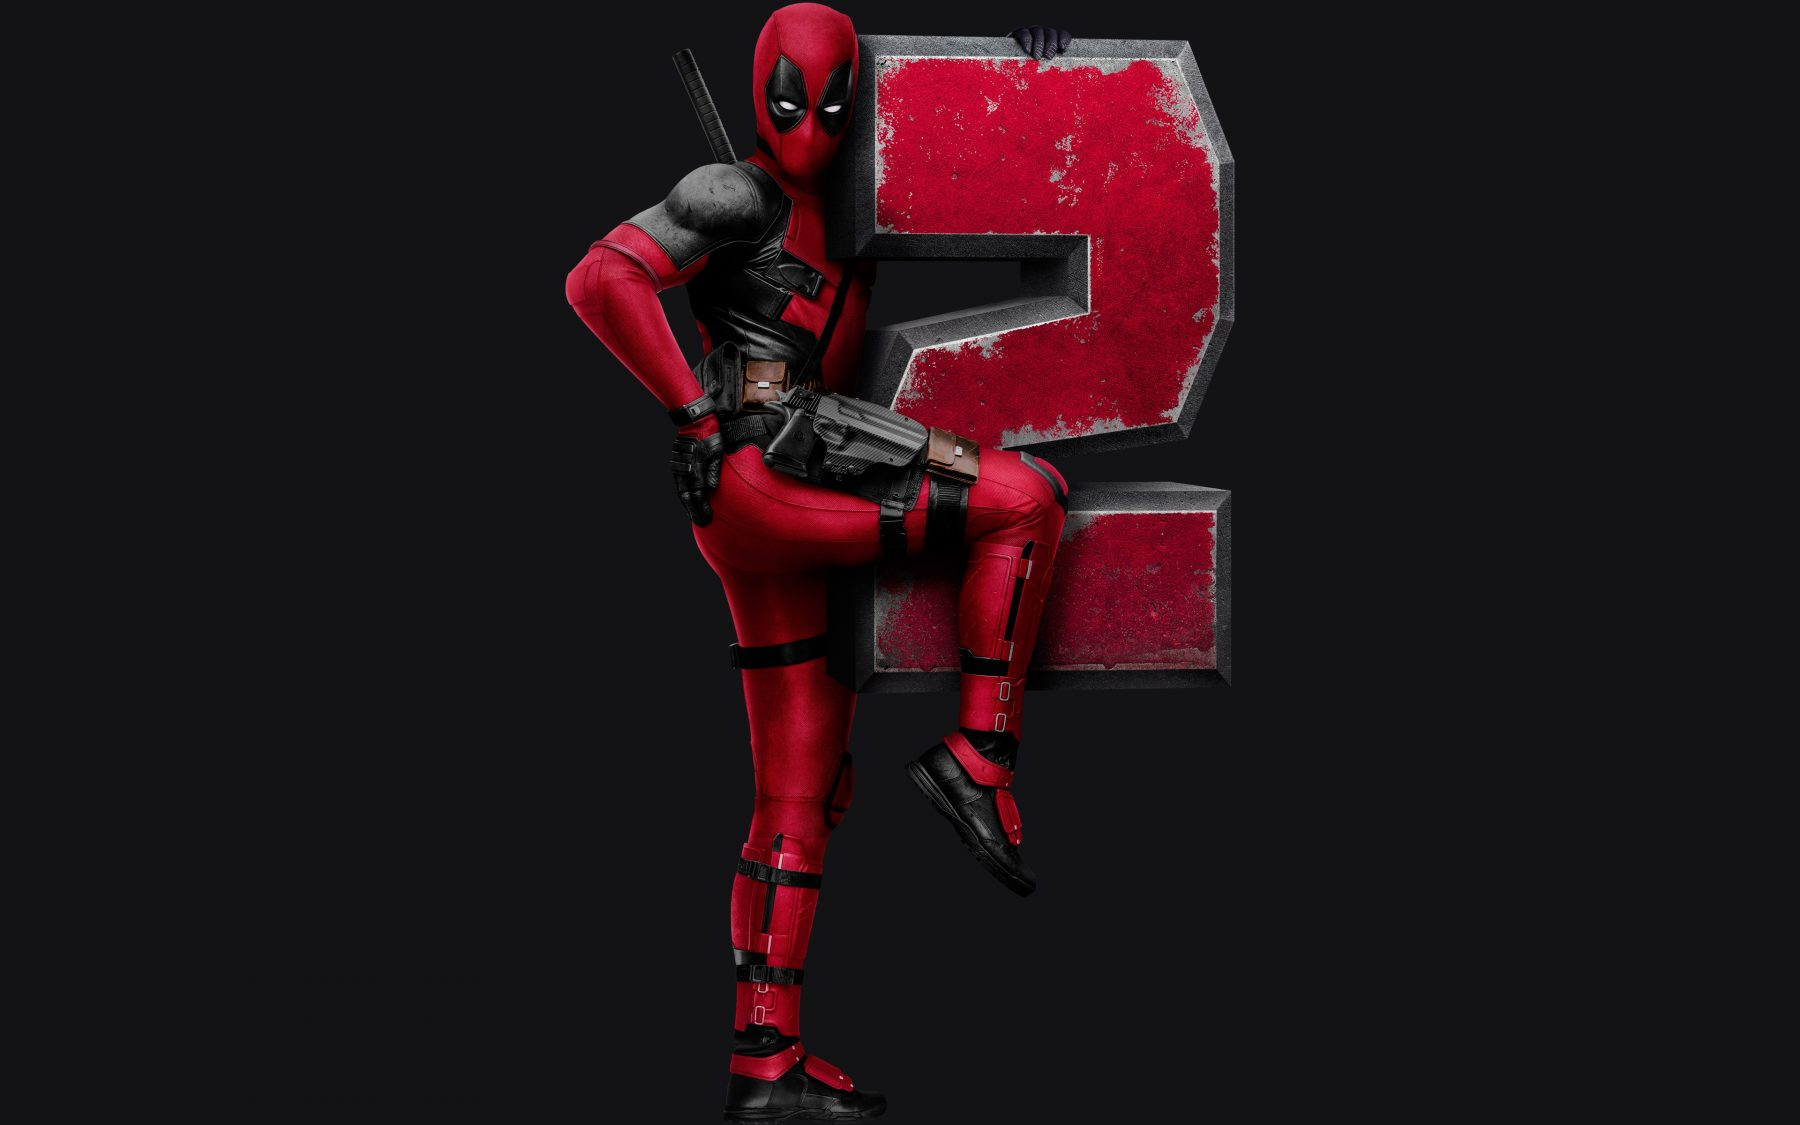 deadpool 2 wallpaper hd 1080p free download for mobile